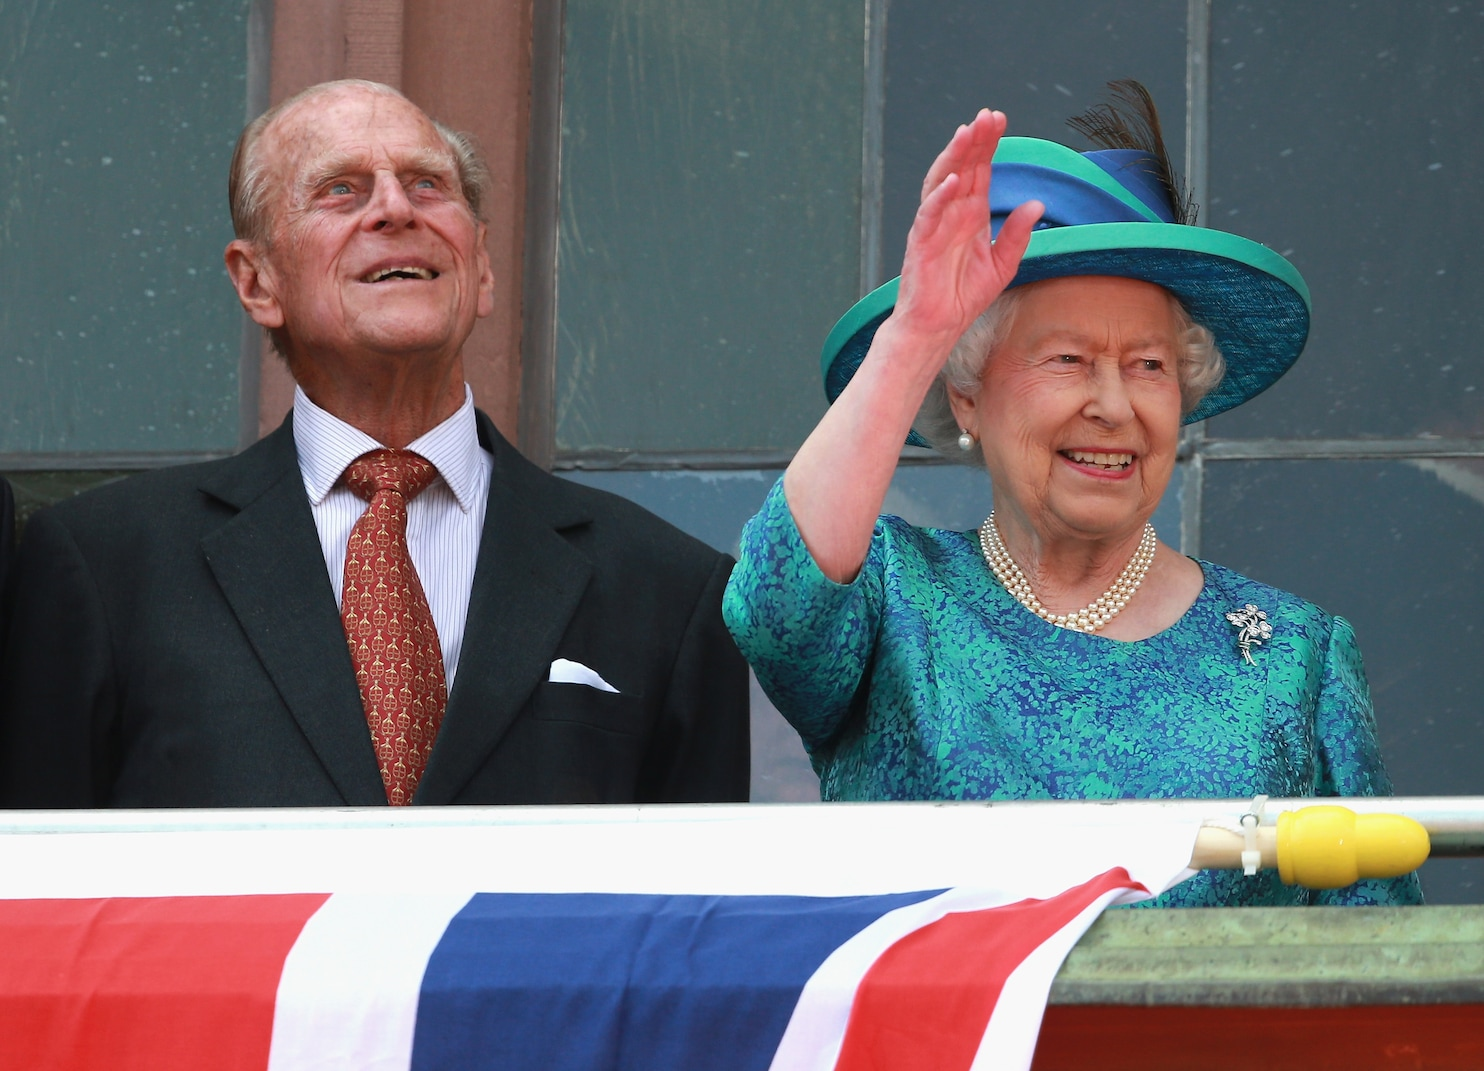 Queen Elizabeth II Becomes First British Monarch To Celebrate 70th Wedding Anniversary The